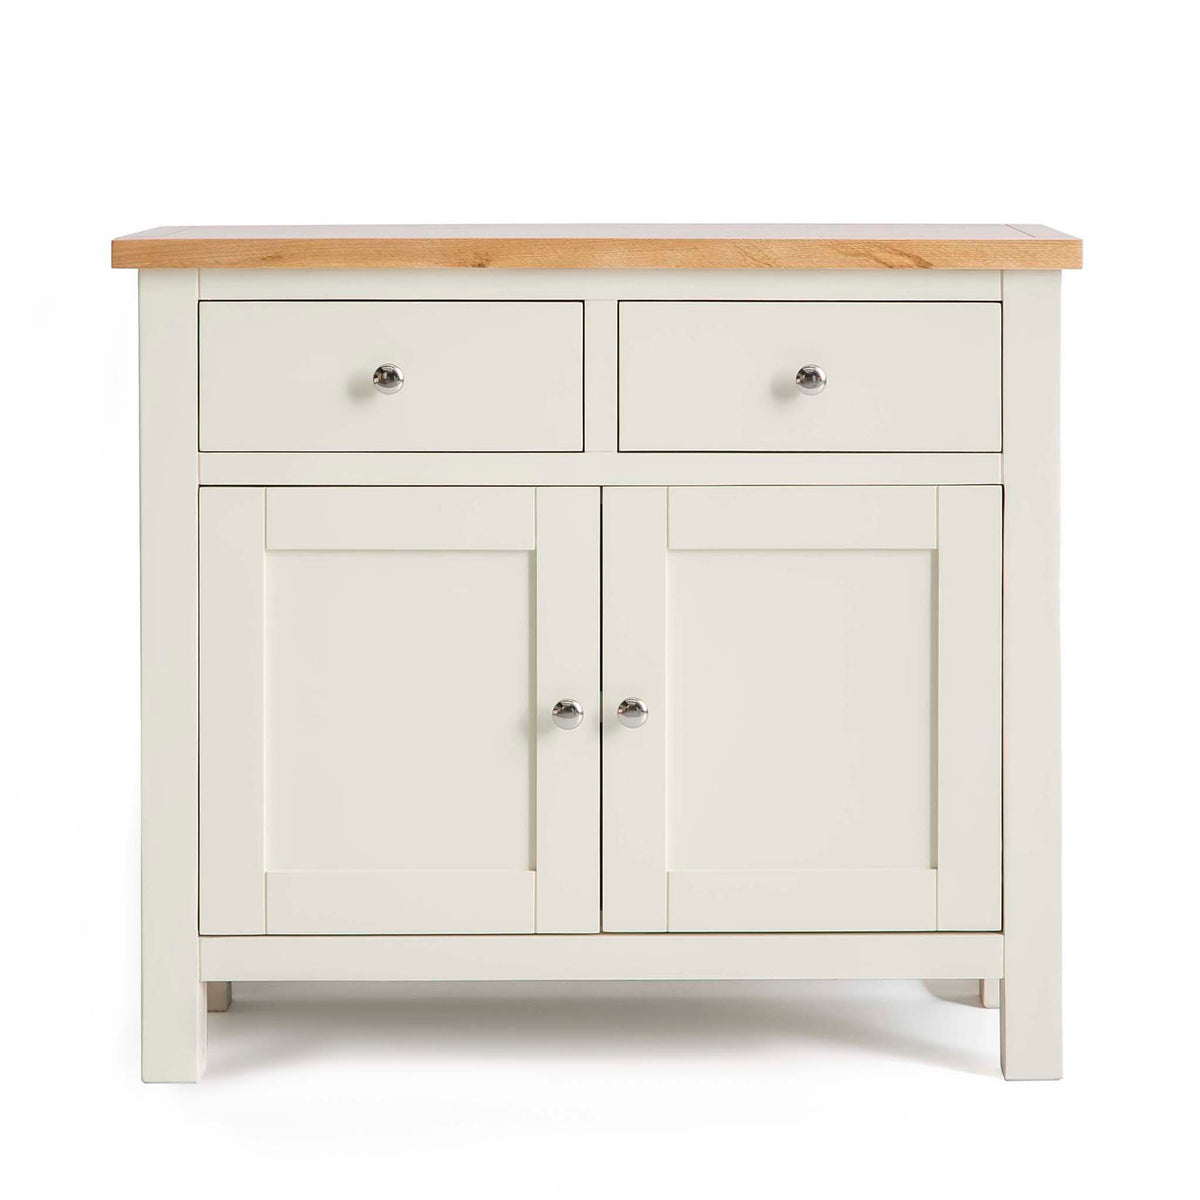 Farrow Cream 2 cupboard 2 drawer small sideboard unit by Roseland Furniture